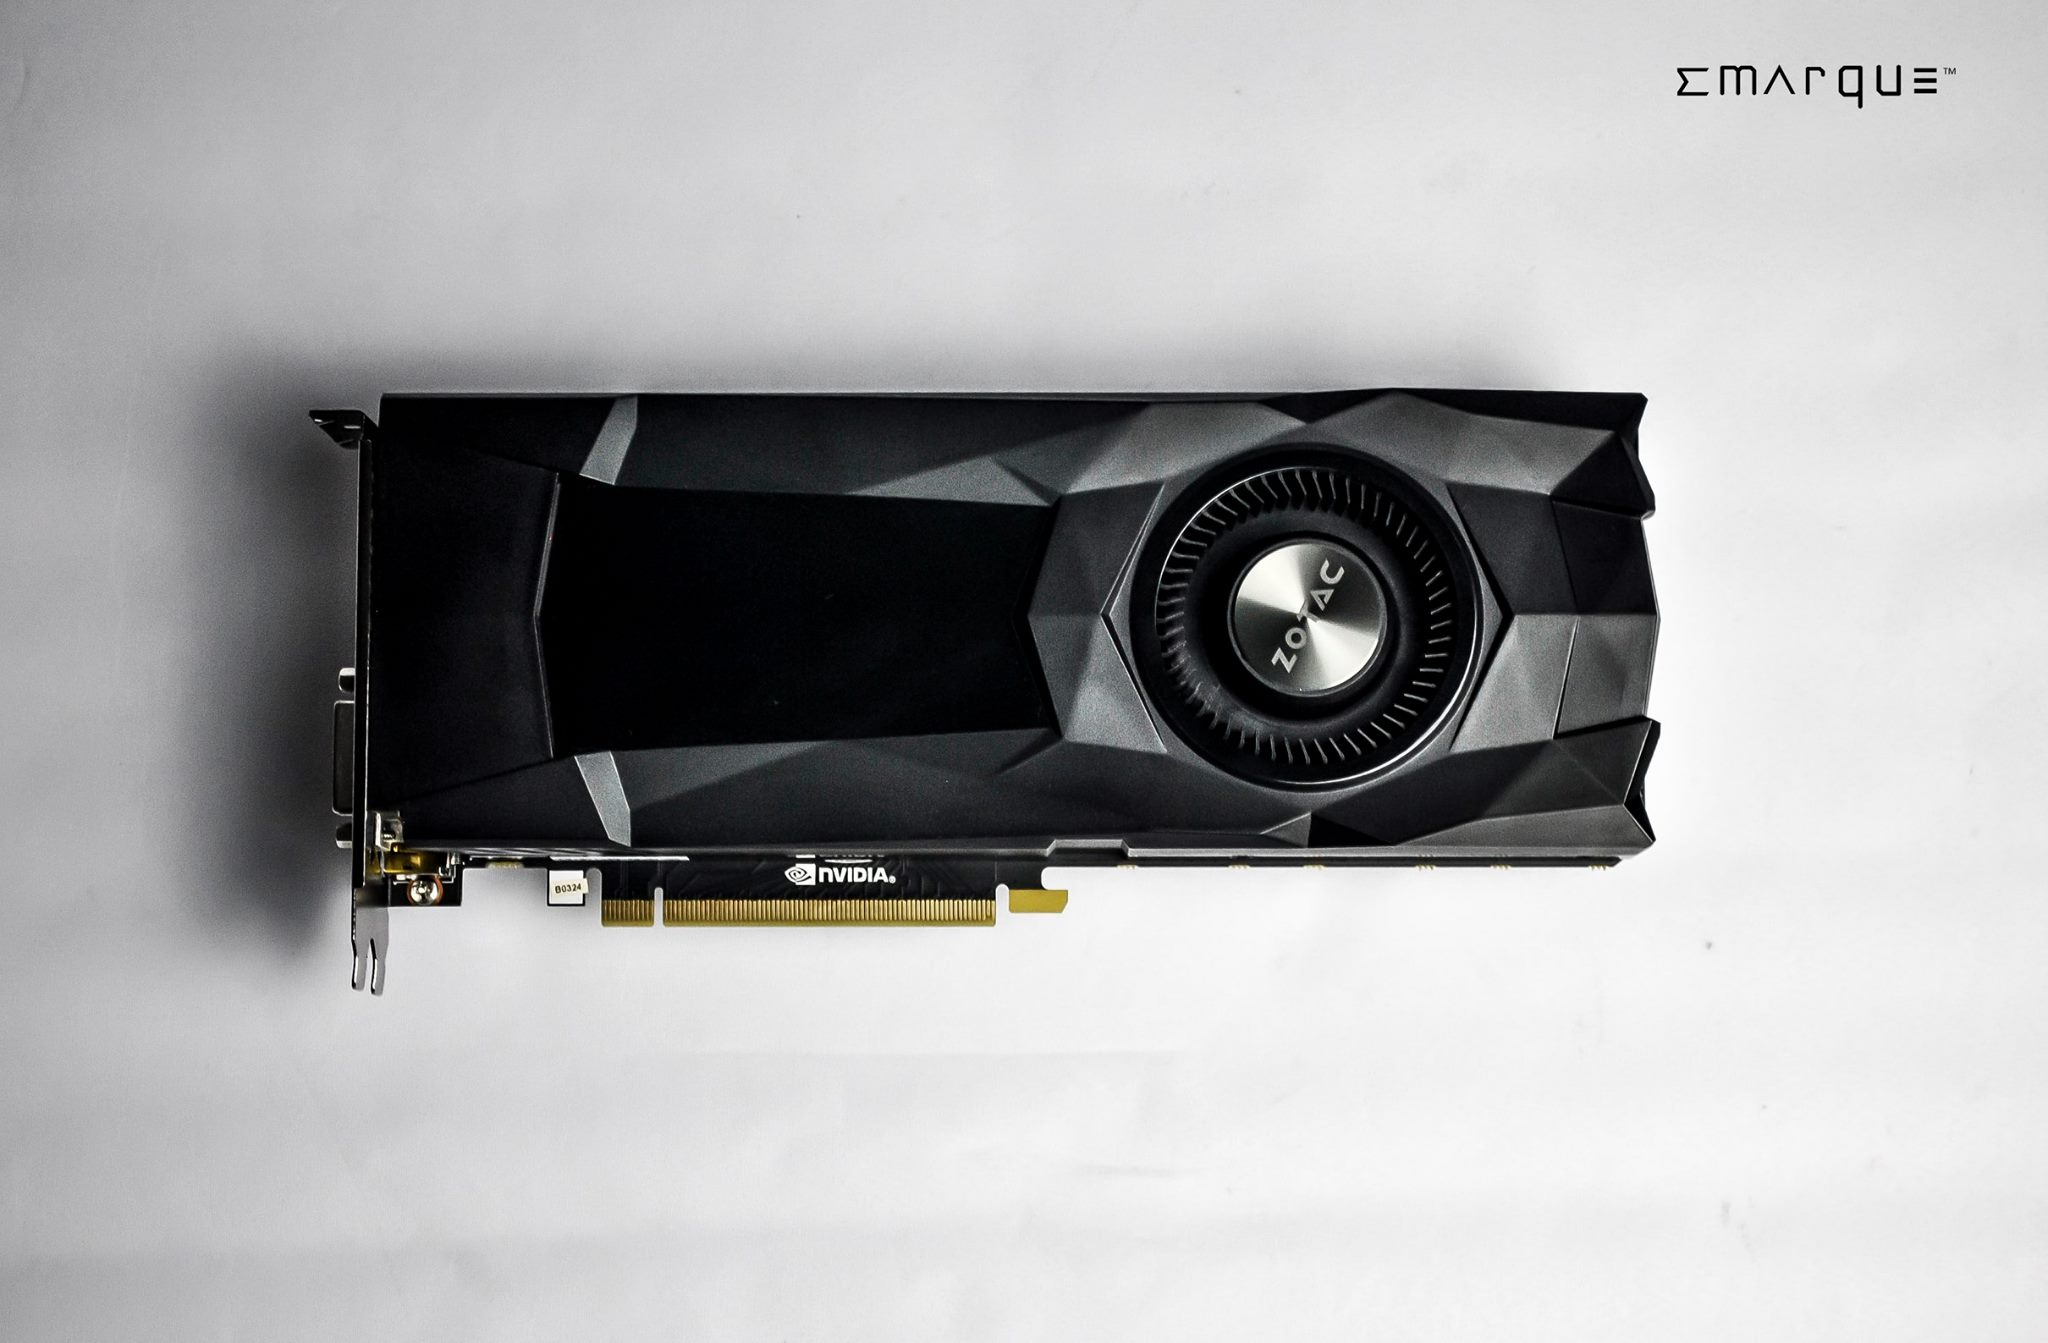 ZOTAC GeForce GTX 1070 Reference Edition is completely black